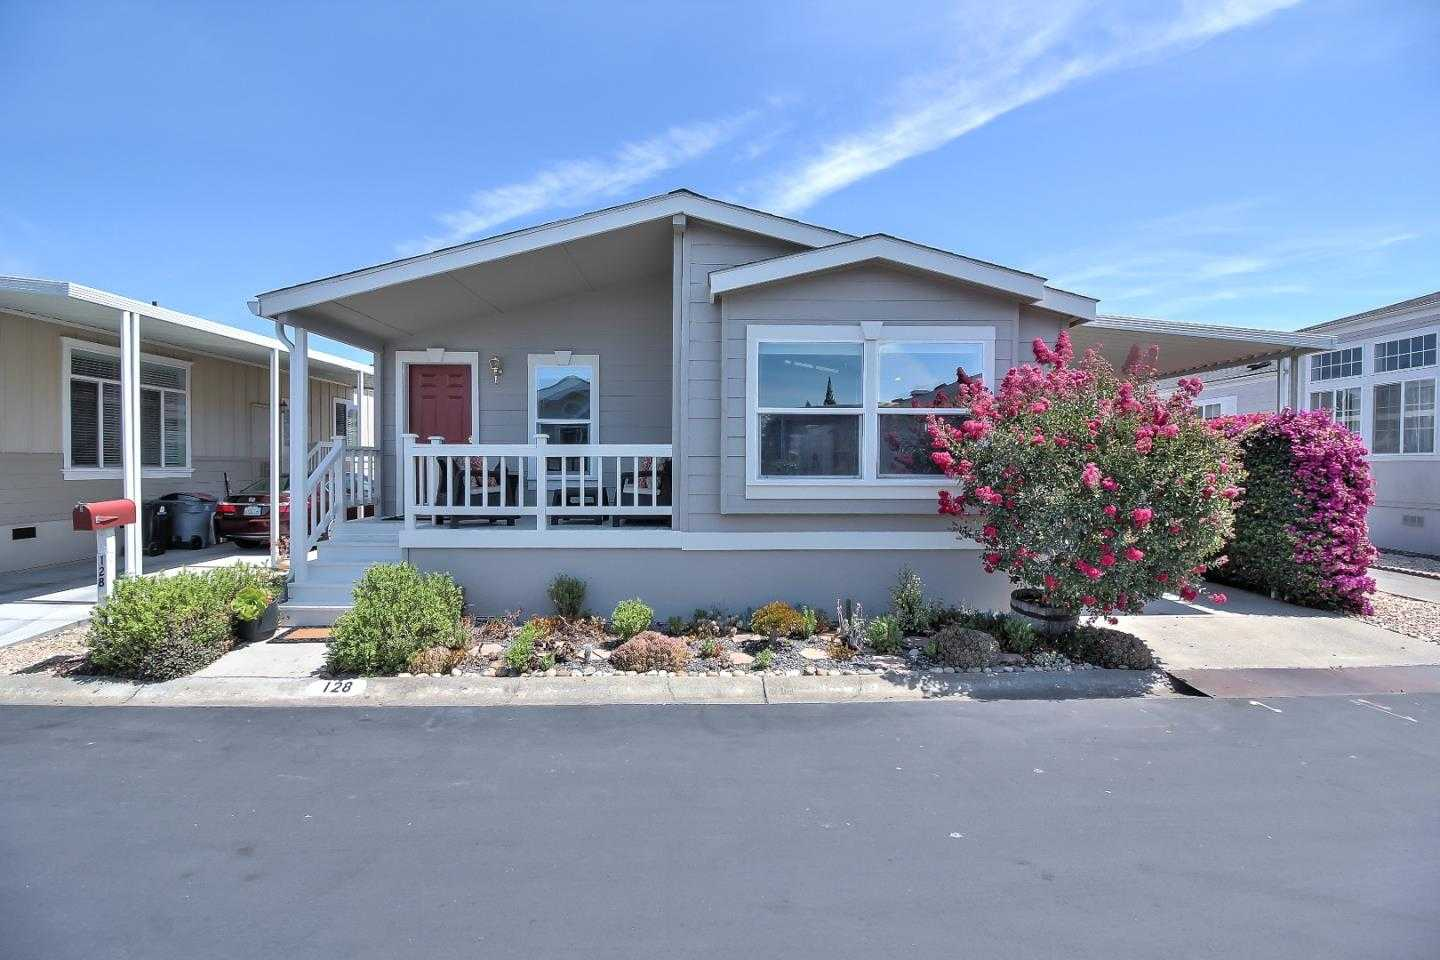 $258,888 - 2Br/2Ba -  for Sale in Mountain View